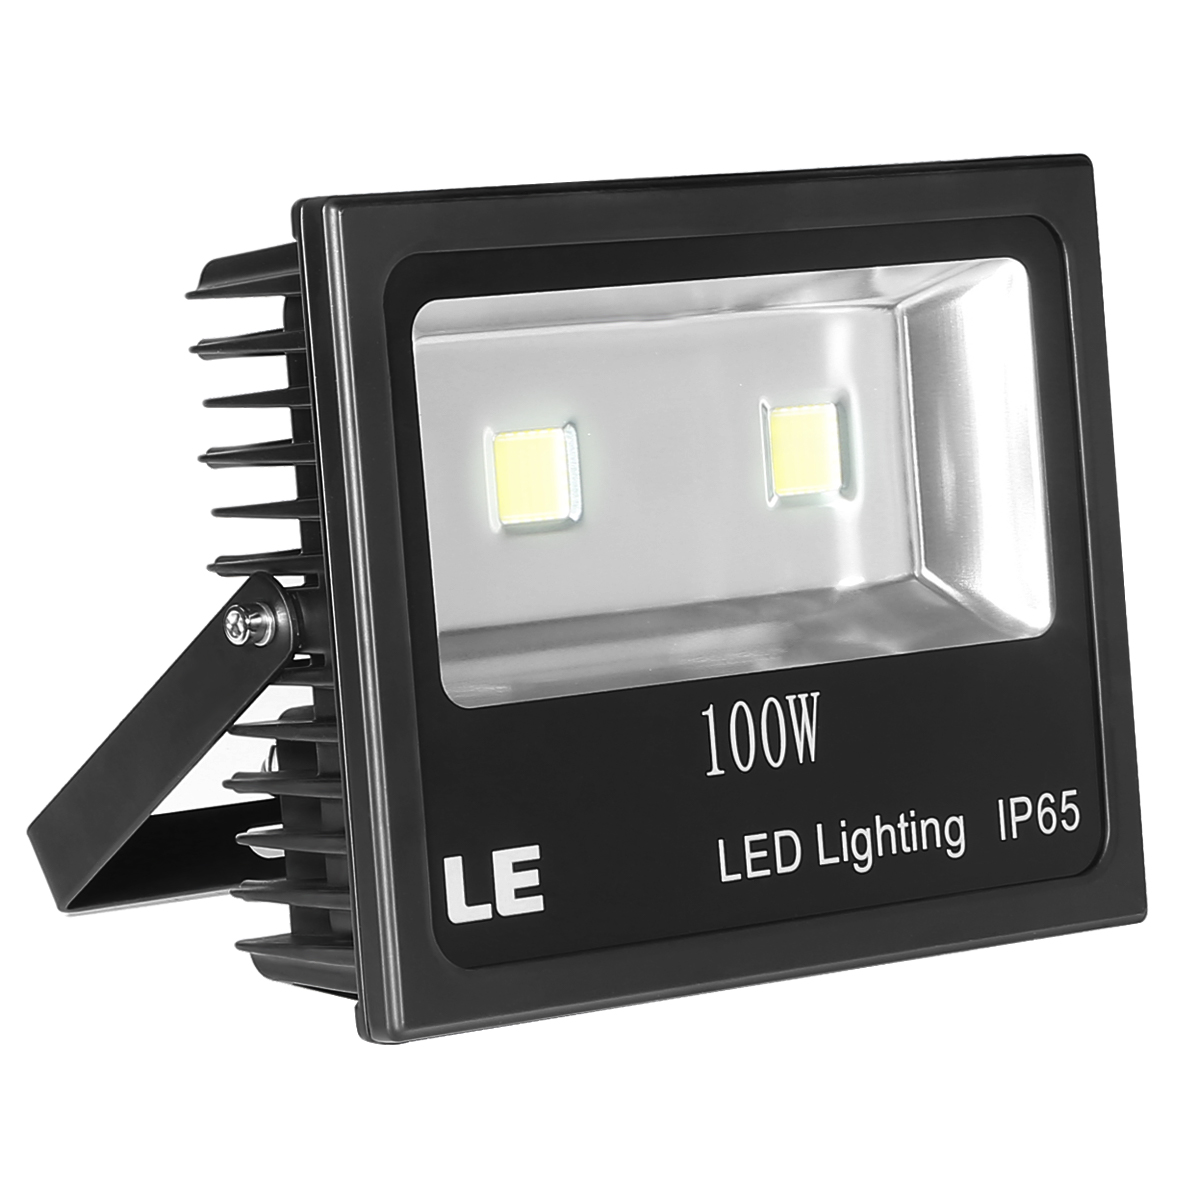 Lighting Ever 100w Led Floodlights Daylight White 10150lm Security Flood Light 250w Hps Bulbs Equiv Outdoor Lights Stadium